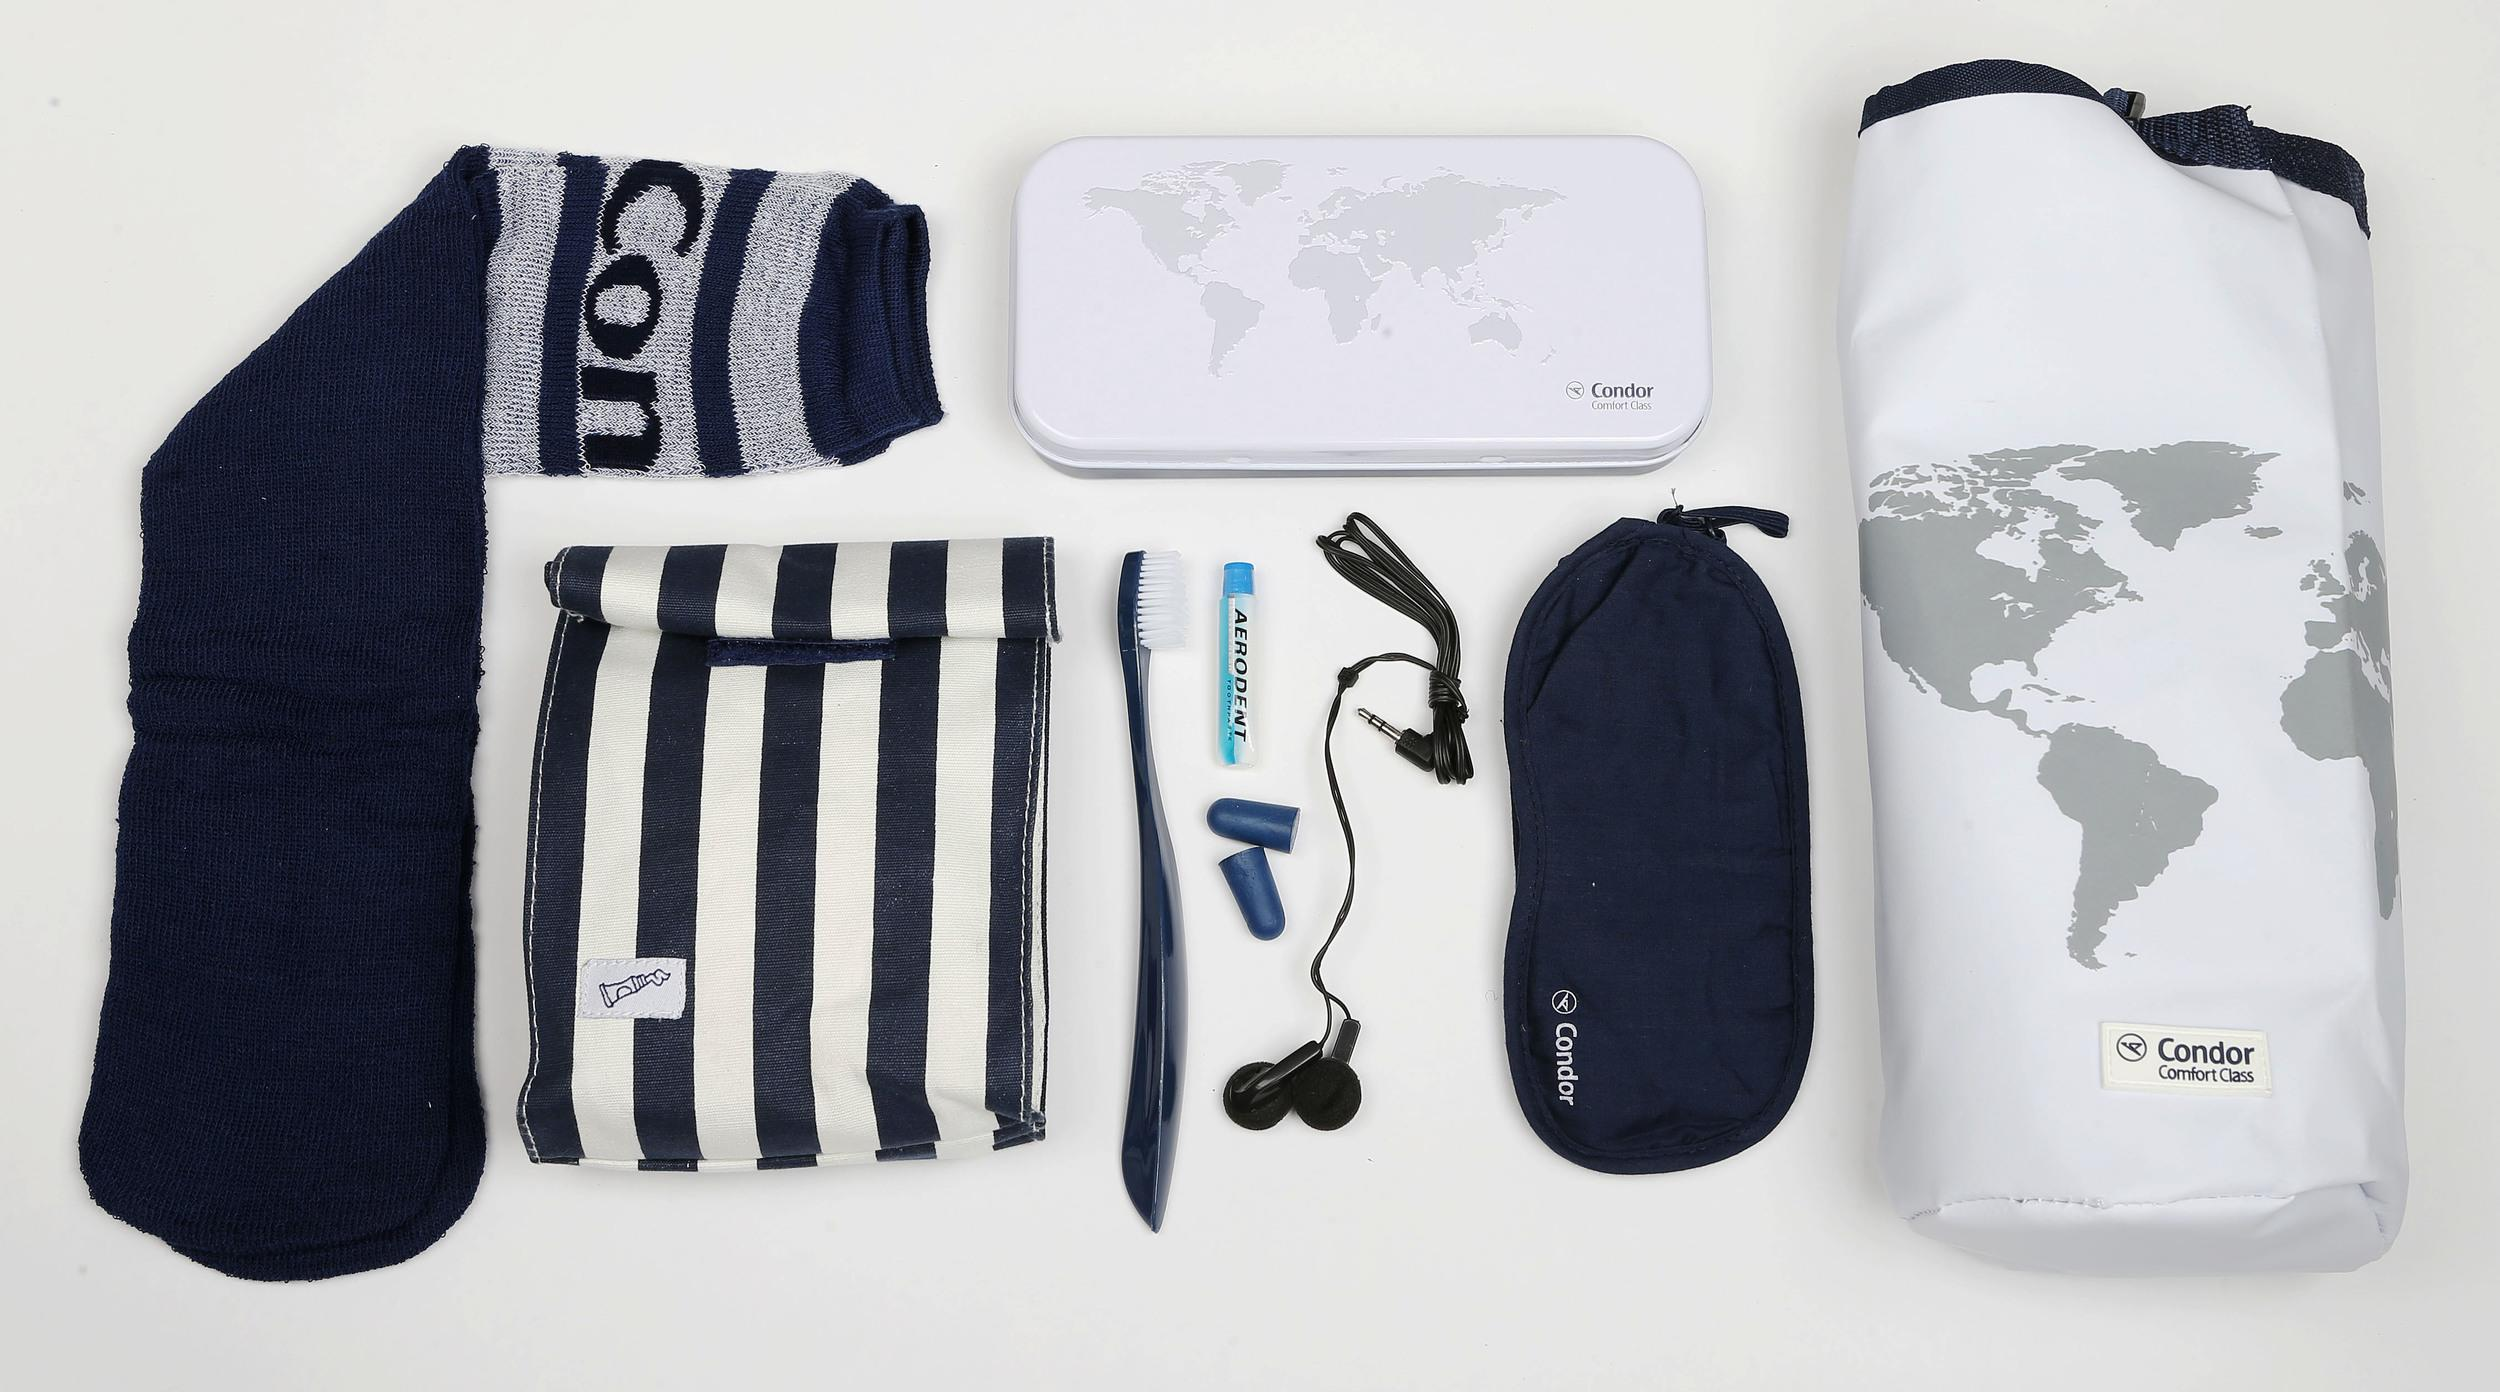 <p><strong>What do you get?</strong> Premium Economy: There is a nautical theme running through the Premium Economy kits which consist of a laundry bag and a cosmetic pouch in navy blue and white stripes.<br /> Comfort Class: The Comfort Class kits come in a wine cooling bag and a metal tin, both decorated with a world map motif.<br /> The contents of all the kits are the same but the Comfort Class customers do not get earphones inside their bags. They contain: Eye mask, socks, toothbrush, ear plugs, ear phones<br /> <strong>Best bit of the kit?</strong> The wine cooler.</p>